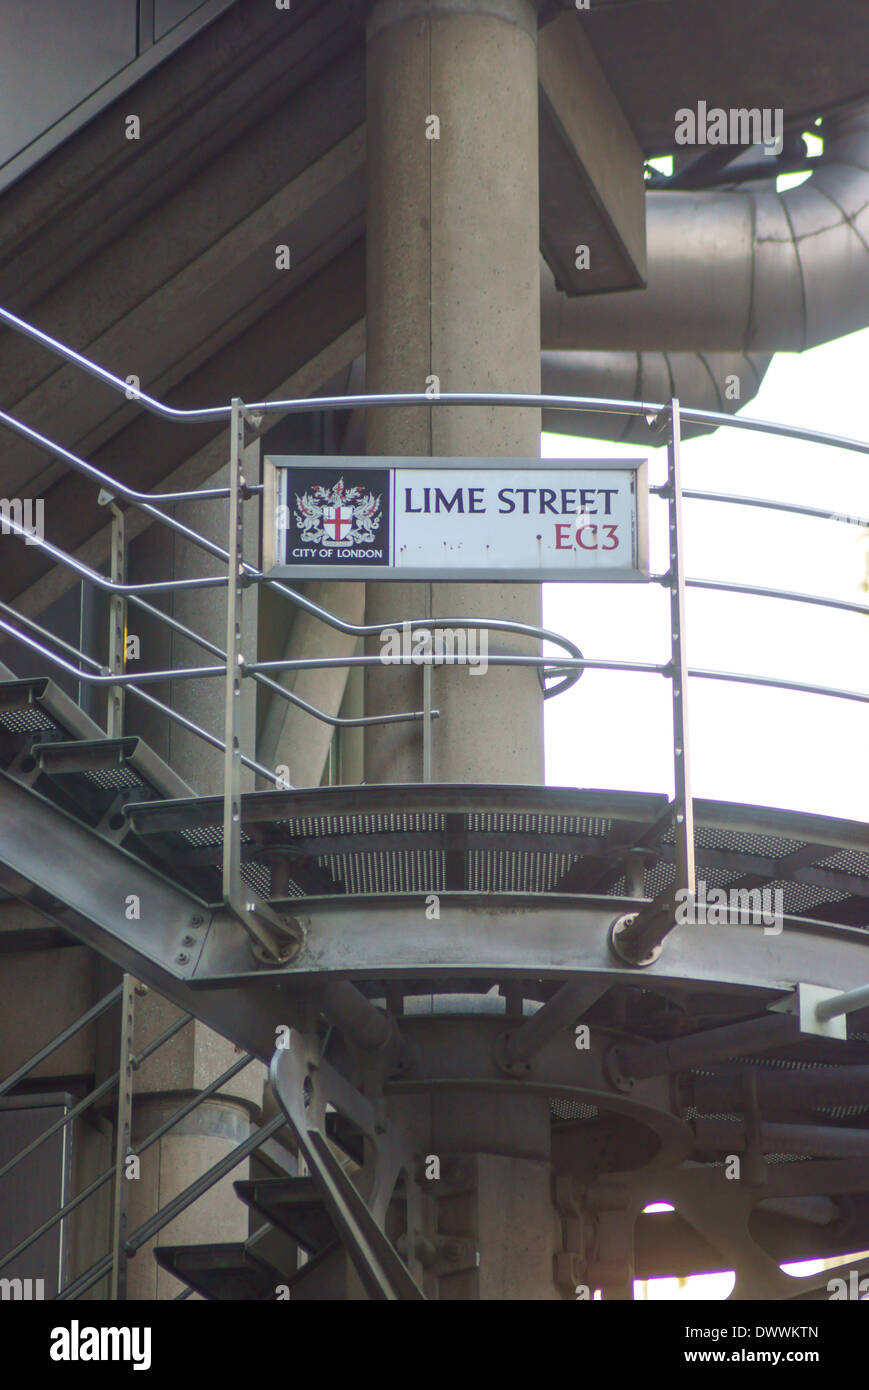 Lime street sign City of London Lloyds Building - Stock Image